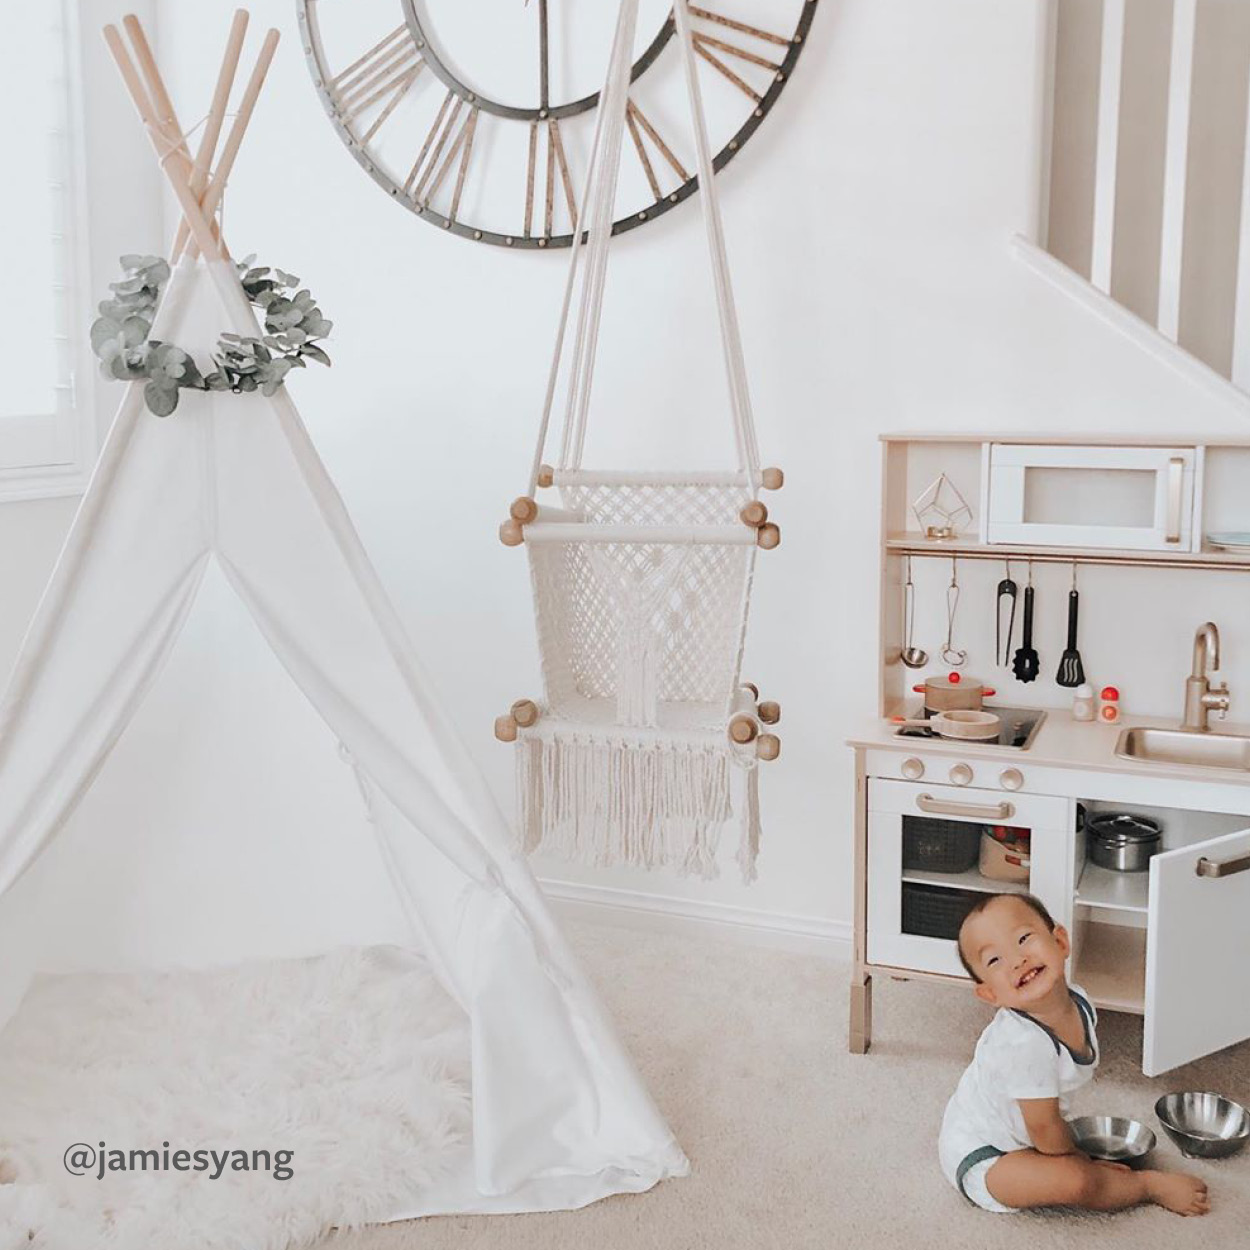 15 Fun Rainy Day Activities For Kids | Carter's | Free Shipping Rainy Day Home Design on riverside home, sunny day home, garden home, easter home, gloomy day home, cloudy day home, fun home, health home, black and white home, paul reubens home, cold home, blu home, farm home,